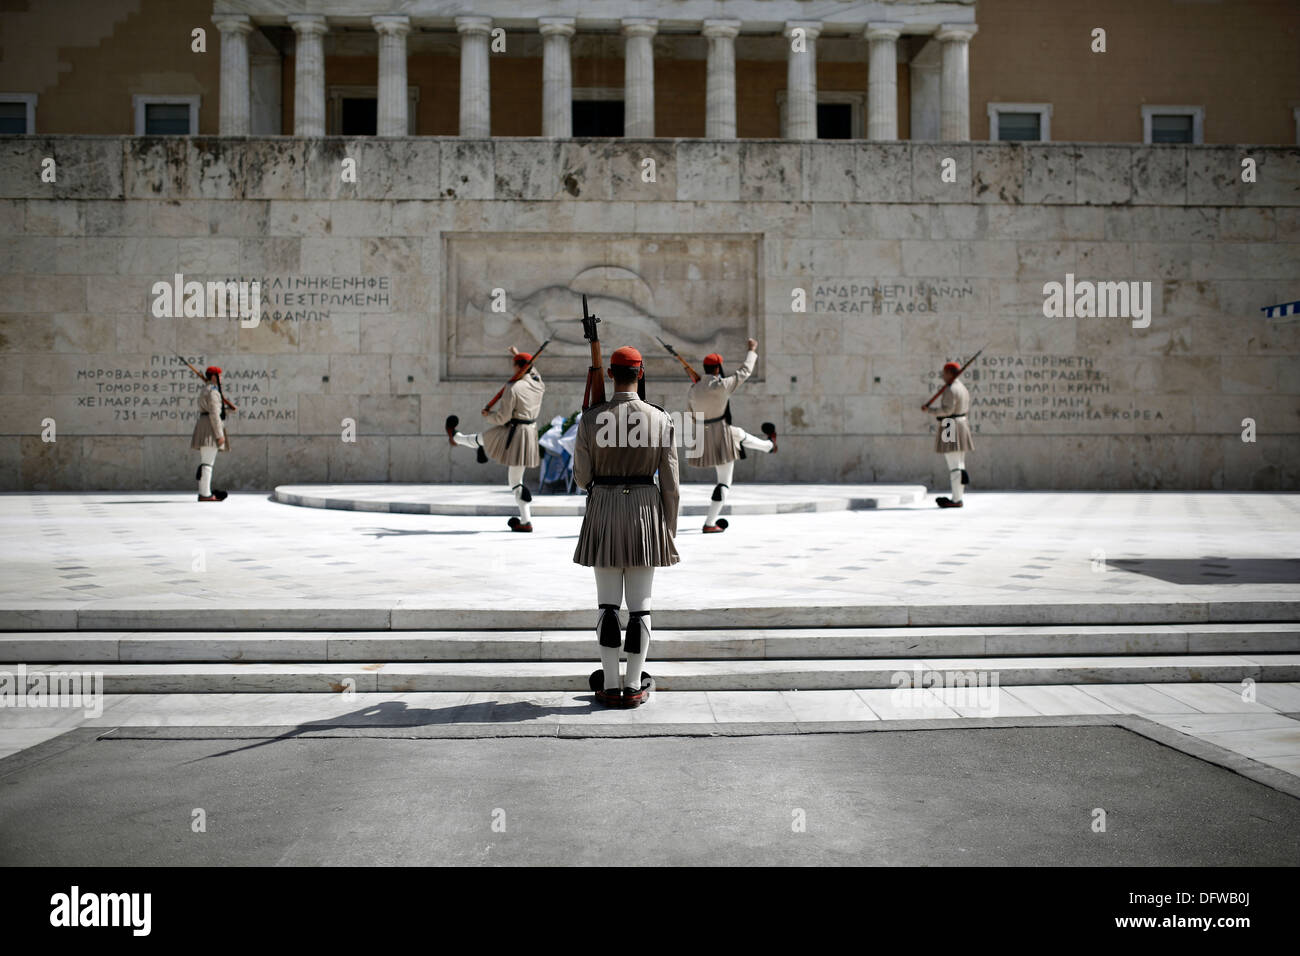 Evzones perform the Changing of the guard ceremony at the Tomb of the Unknown Soldier in Syntagma Square in Athens, Stock Photo